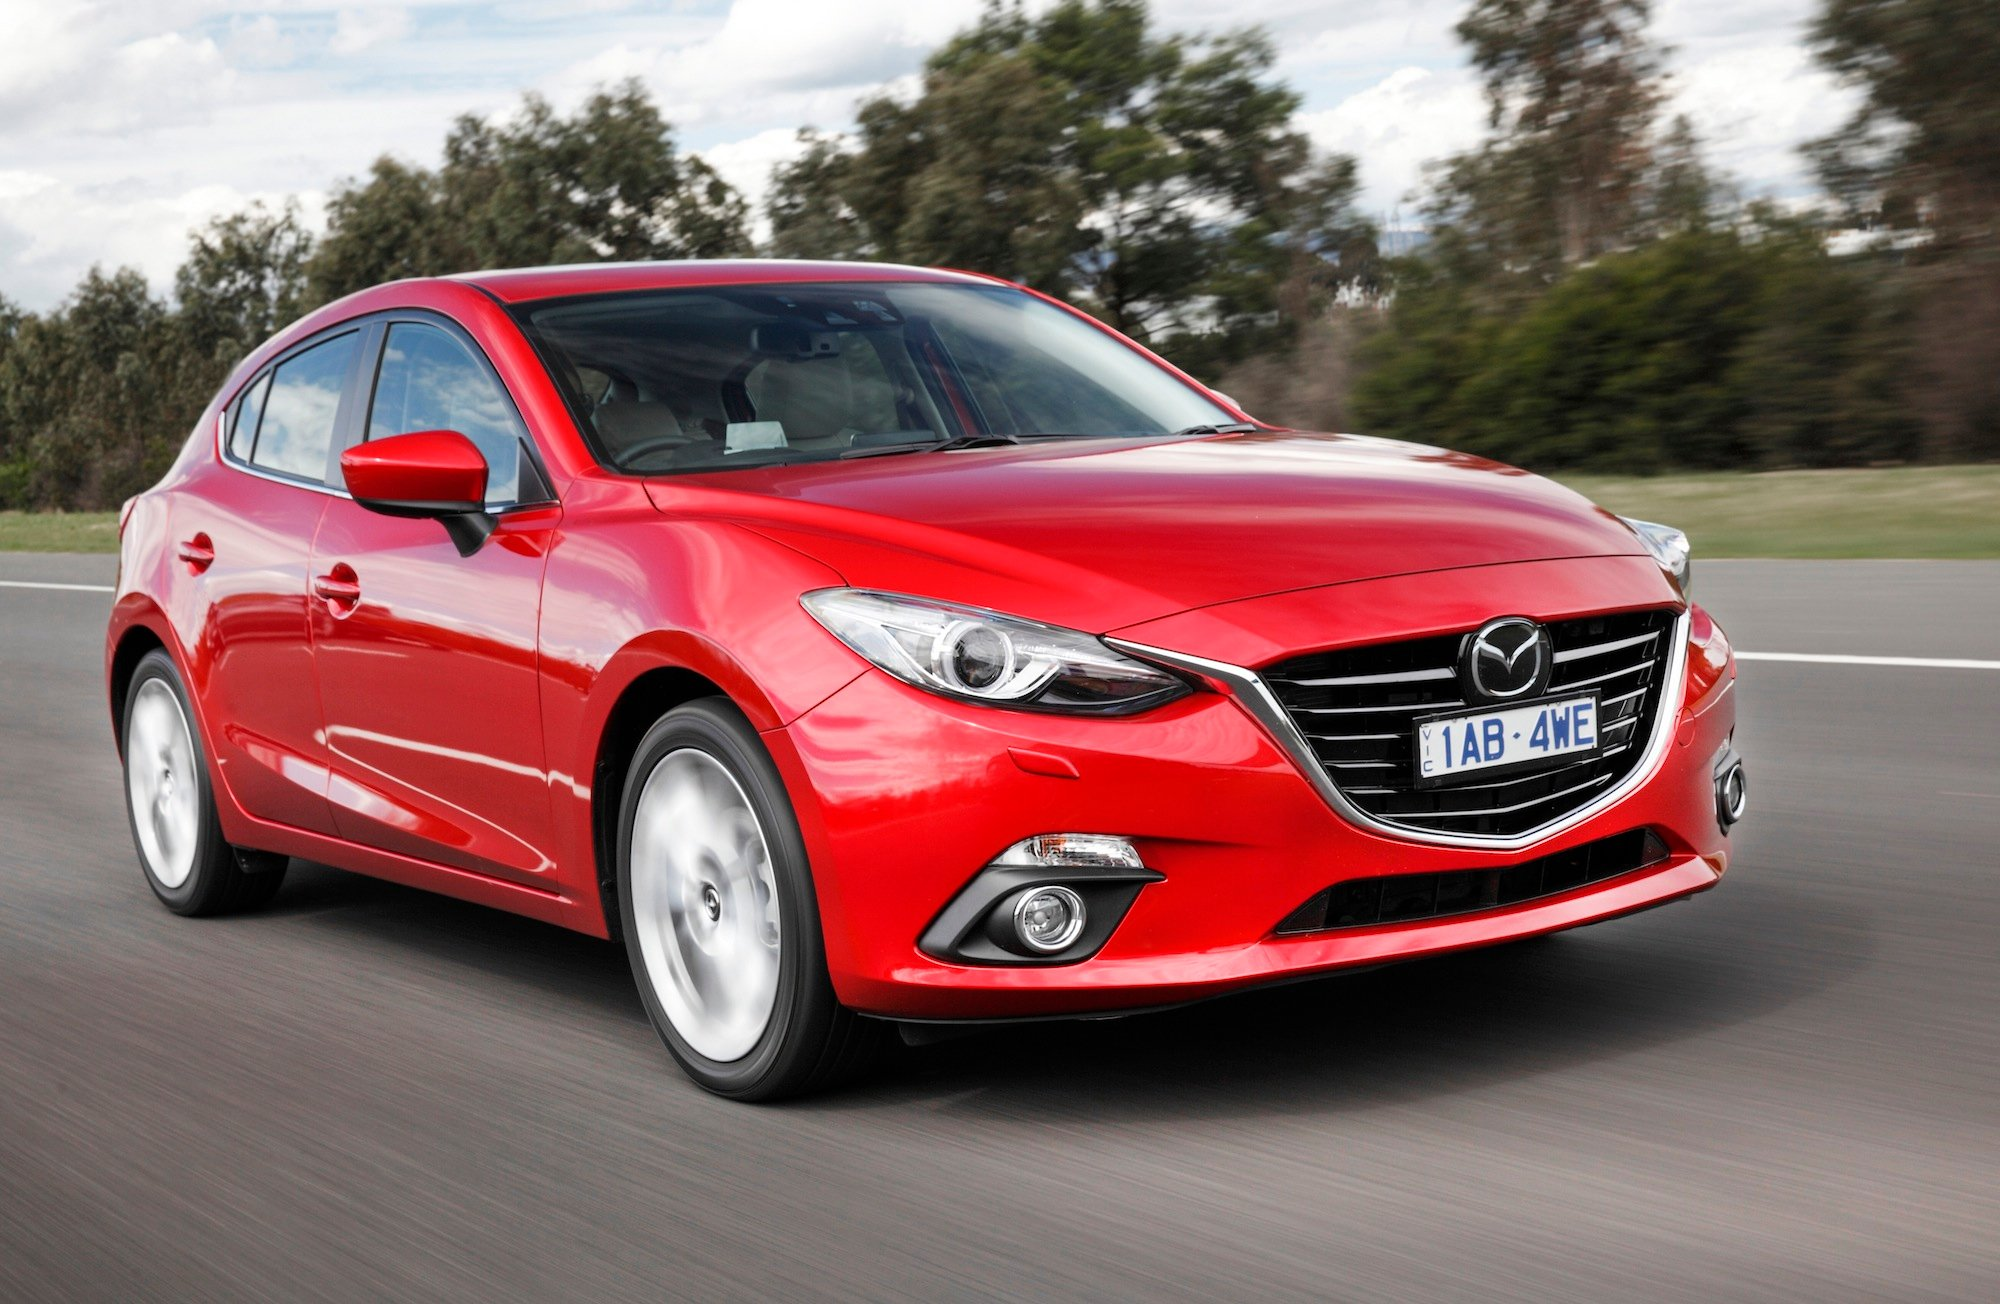 2014 Mazda 3 Pricing And Specifications Photos Caradvice